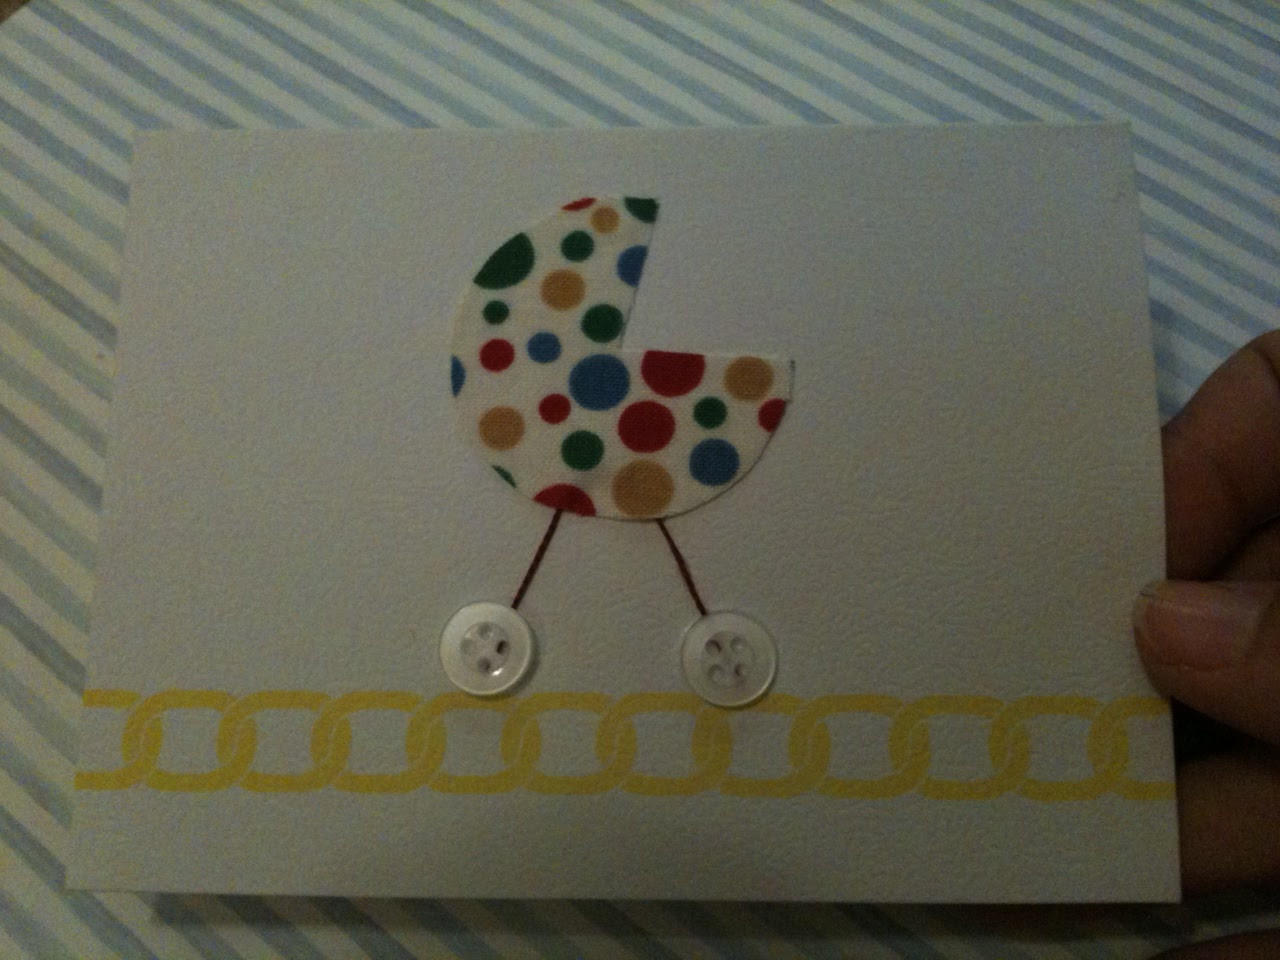 Best ideas about DIY Baby Card . Save or Pin Glitter Glue GLAM DIY Baby Shower Card Now.